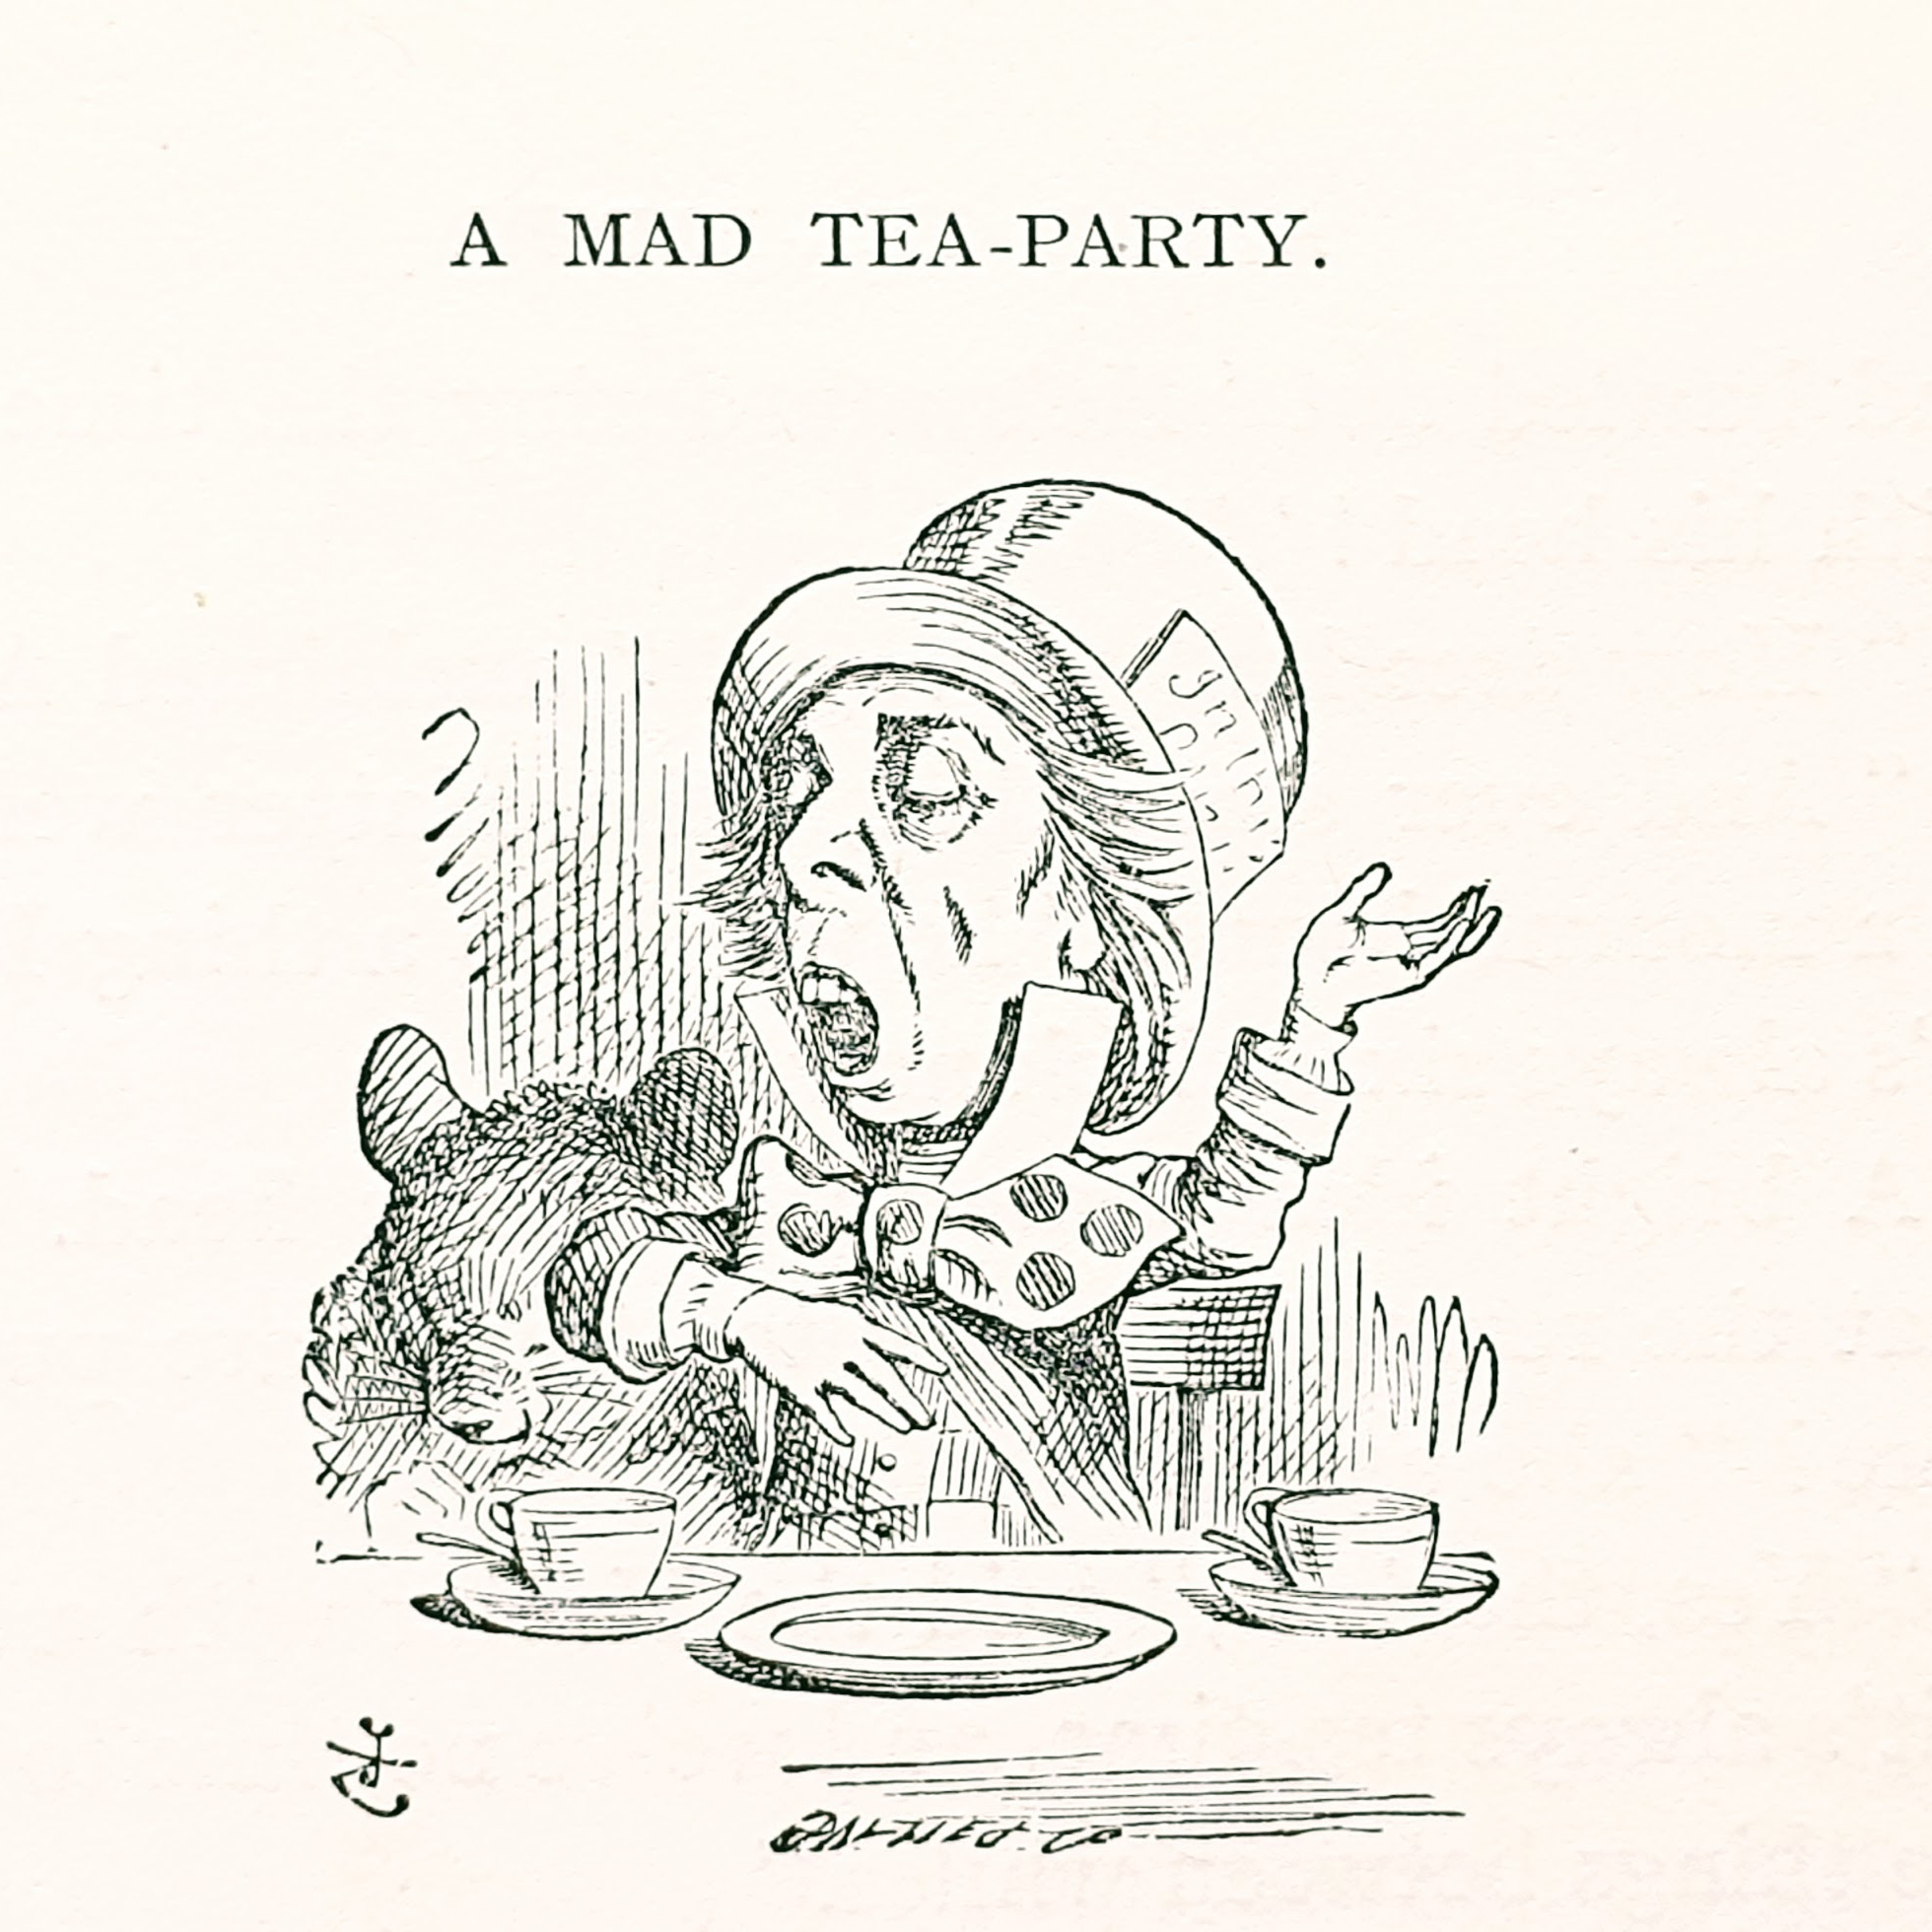 From  Alice's Adventures in Wonderland . Illustration (1865) by John Tenniel - Public Domain